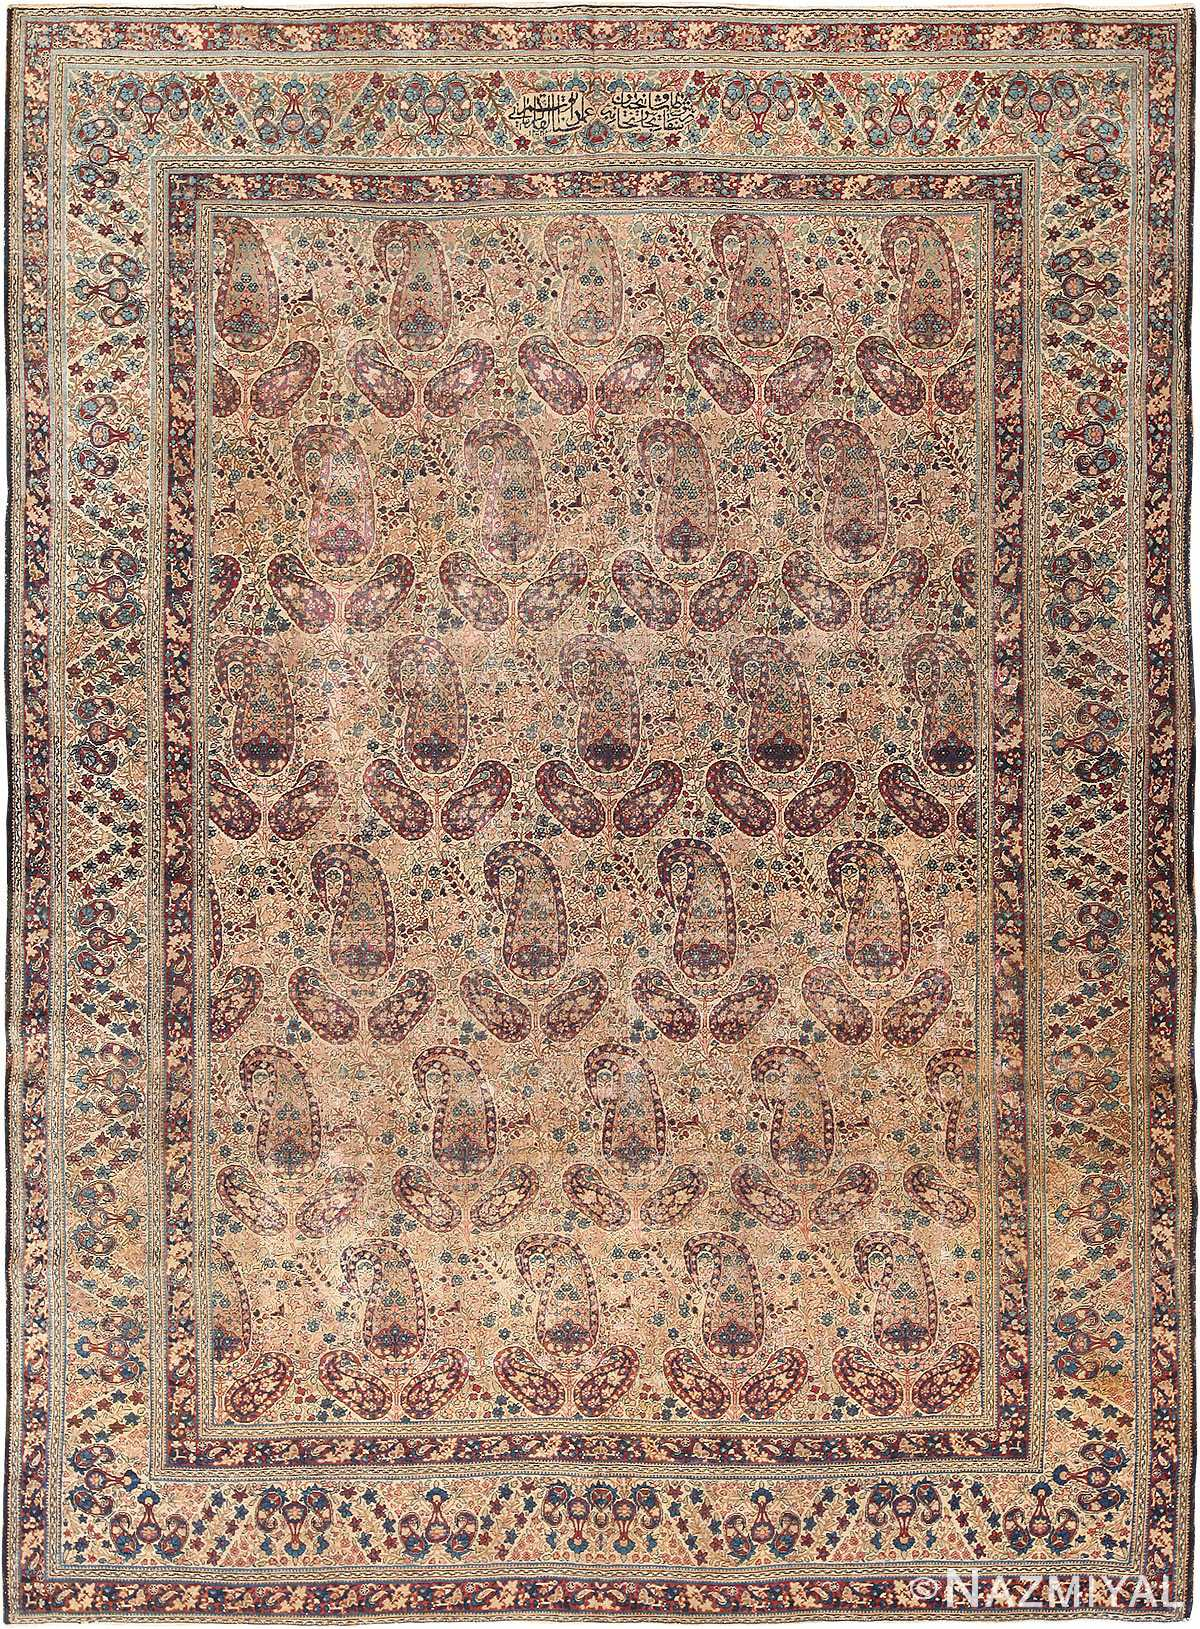 Antique Persian Kerman Rug by Master Weaver Kermani #49958 from Namziyal Antique Persian Rugs in NYC